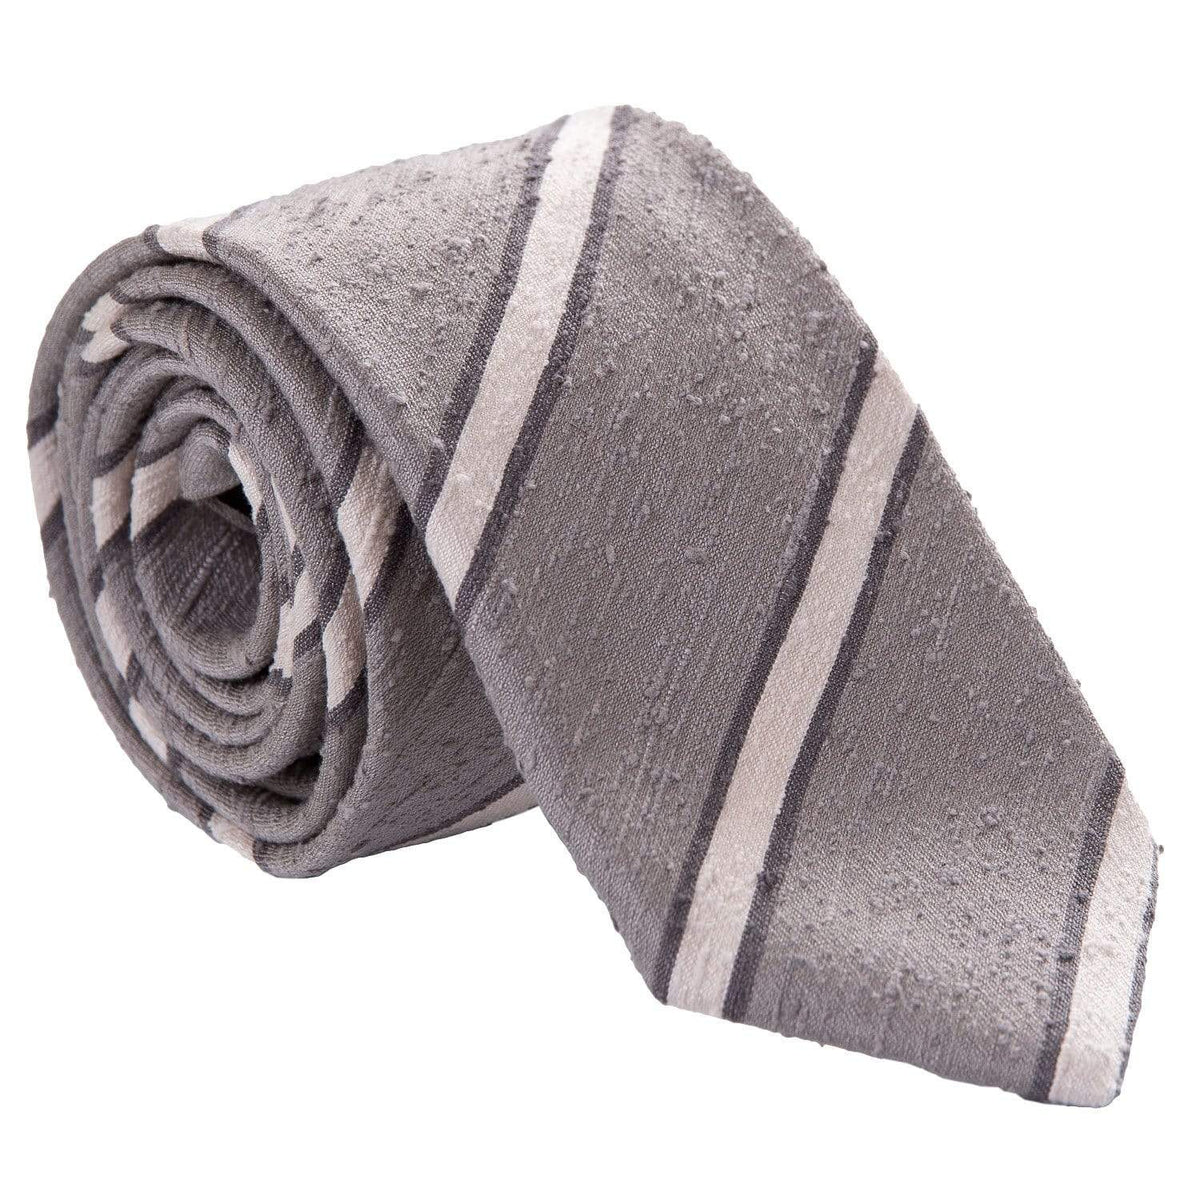 grey shantung tie from italy